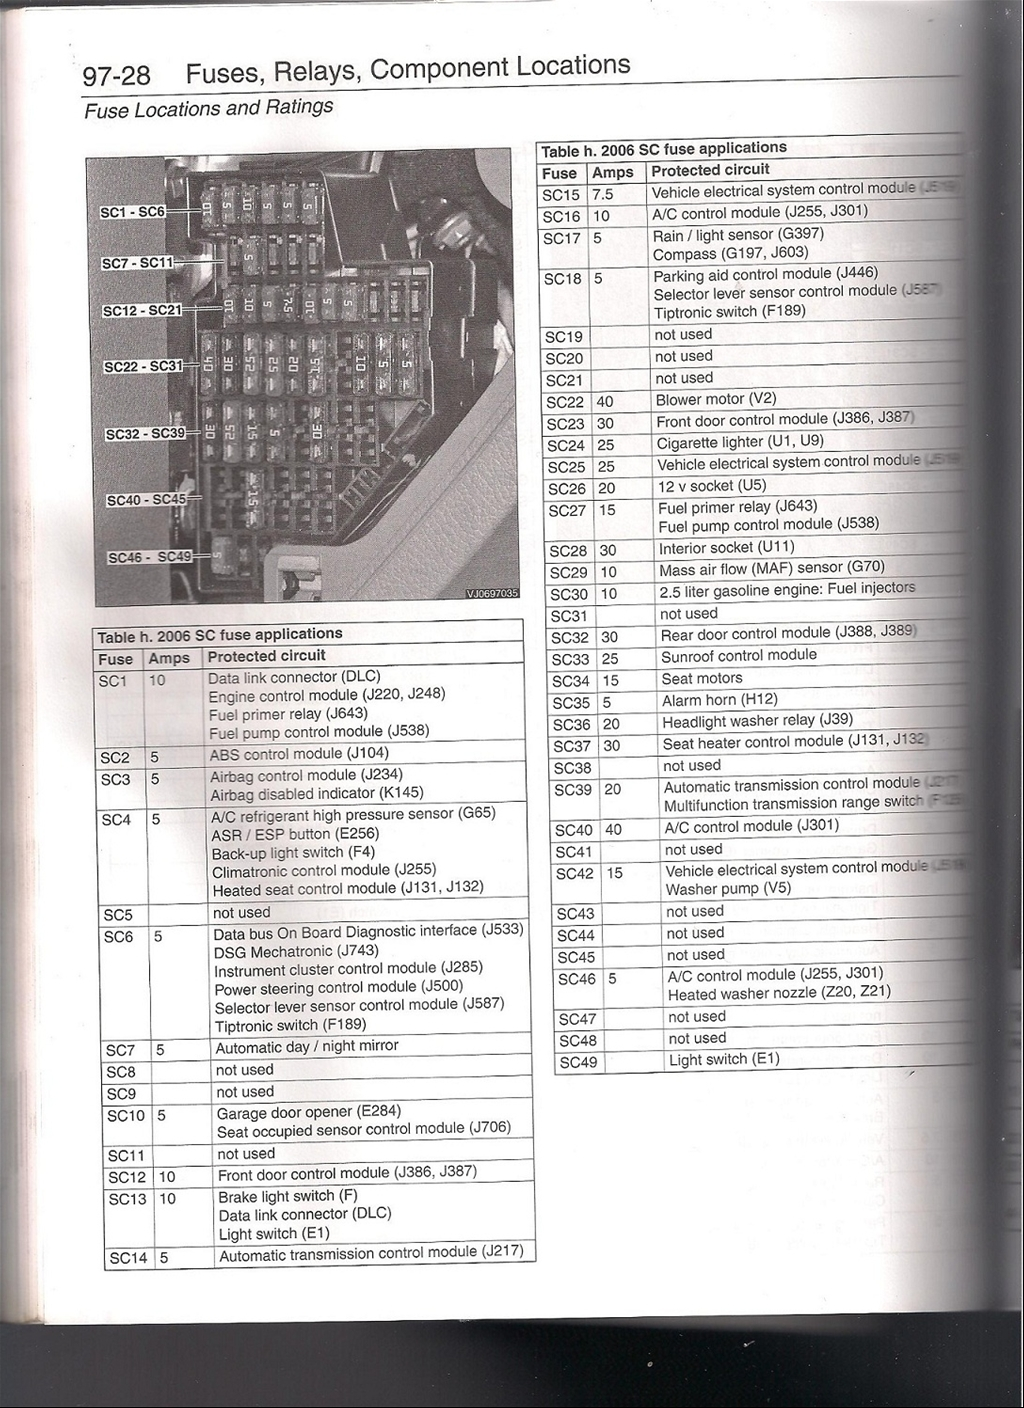 2006 Jetta 2_5 Fuse Diagram http://forums.tdiclub.com/showthread.php?t=304672